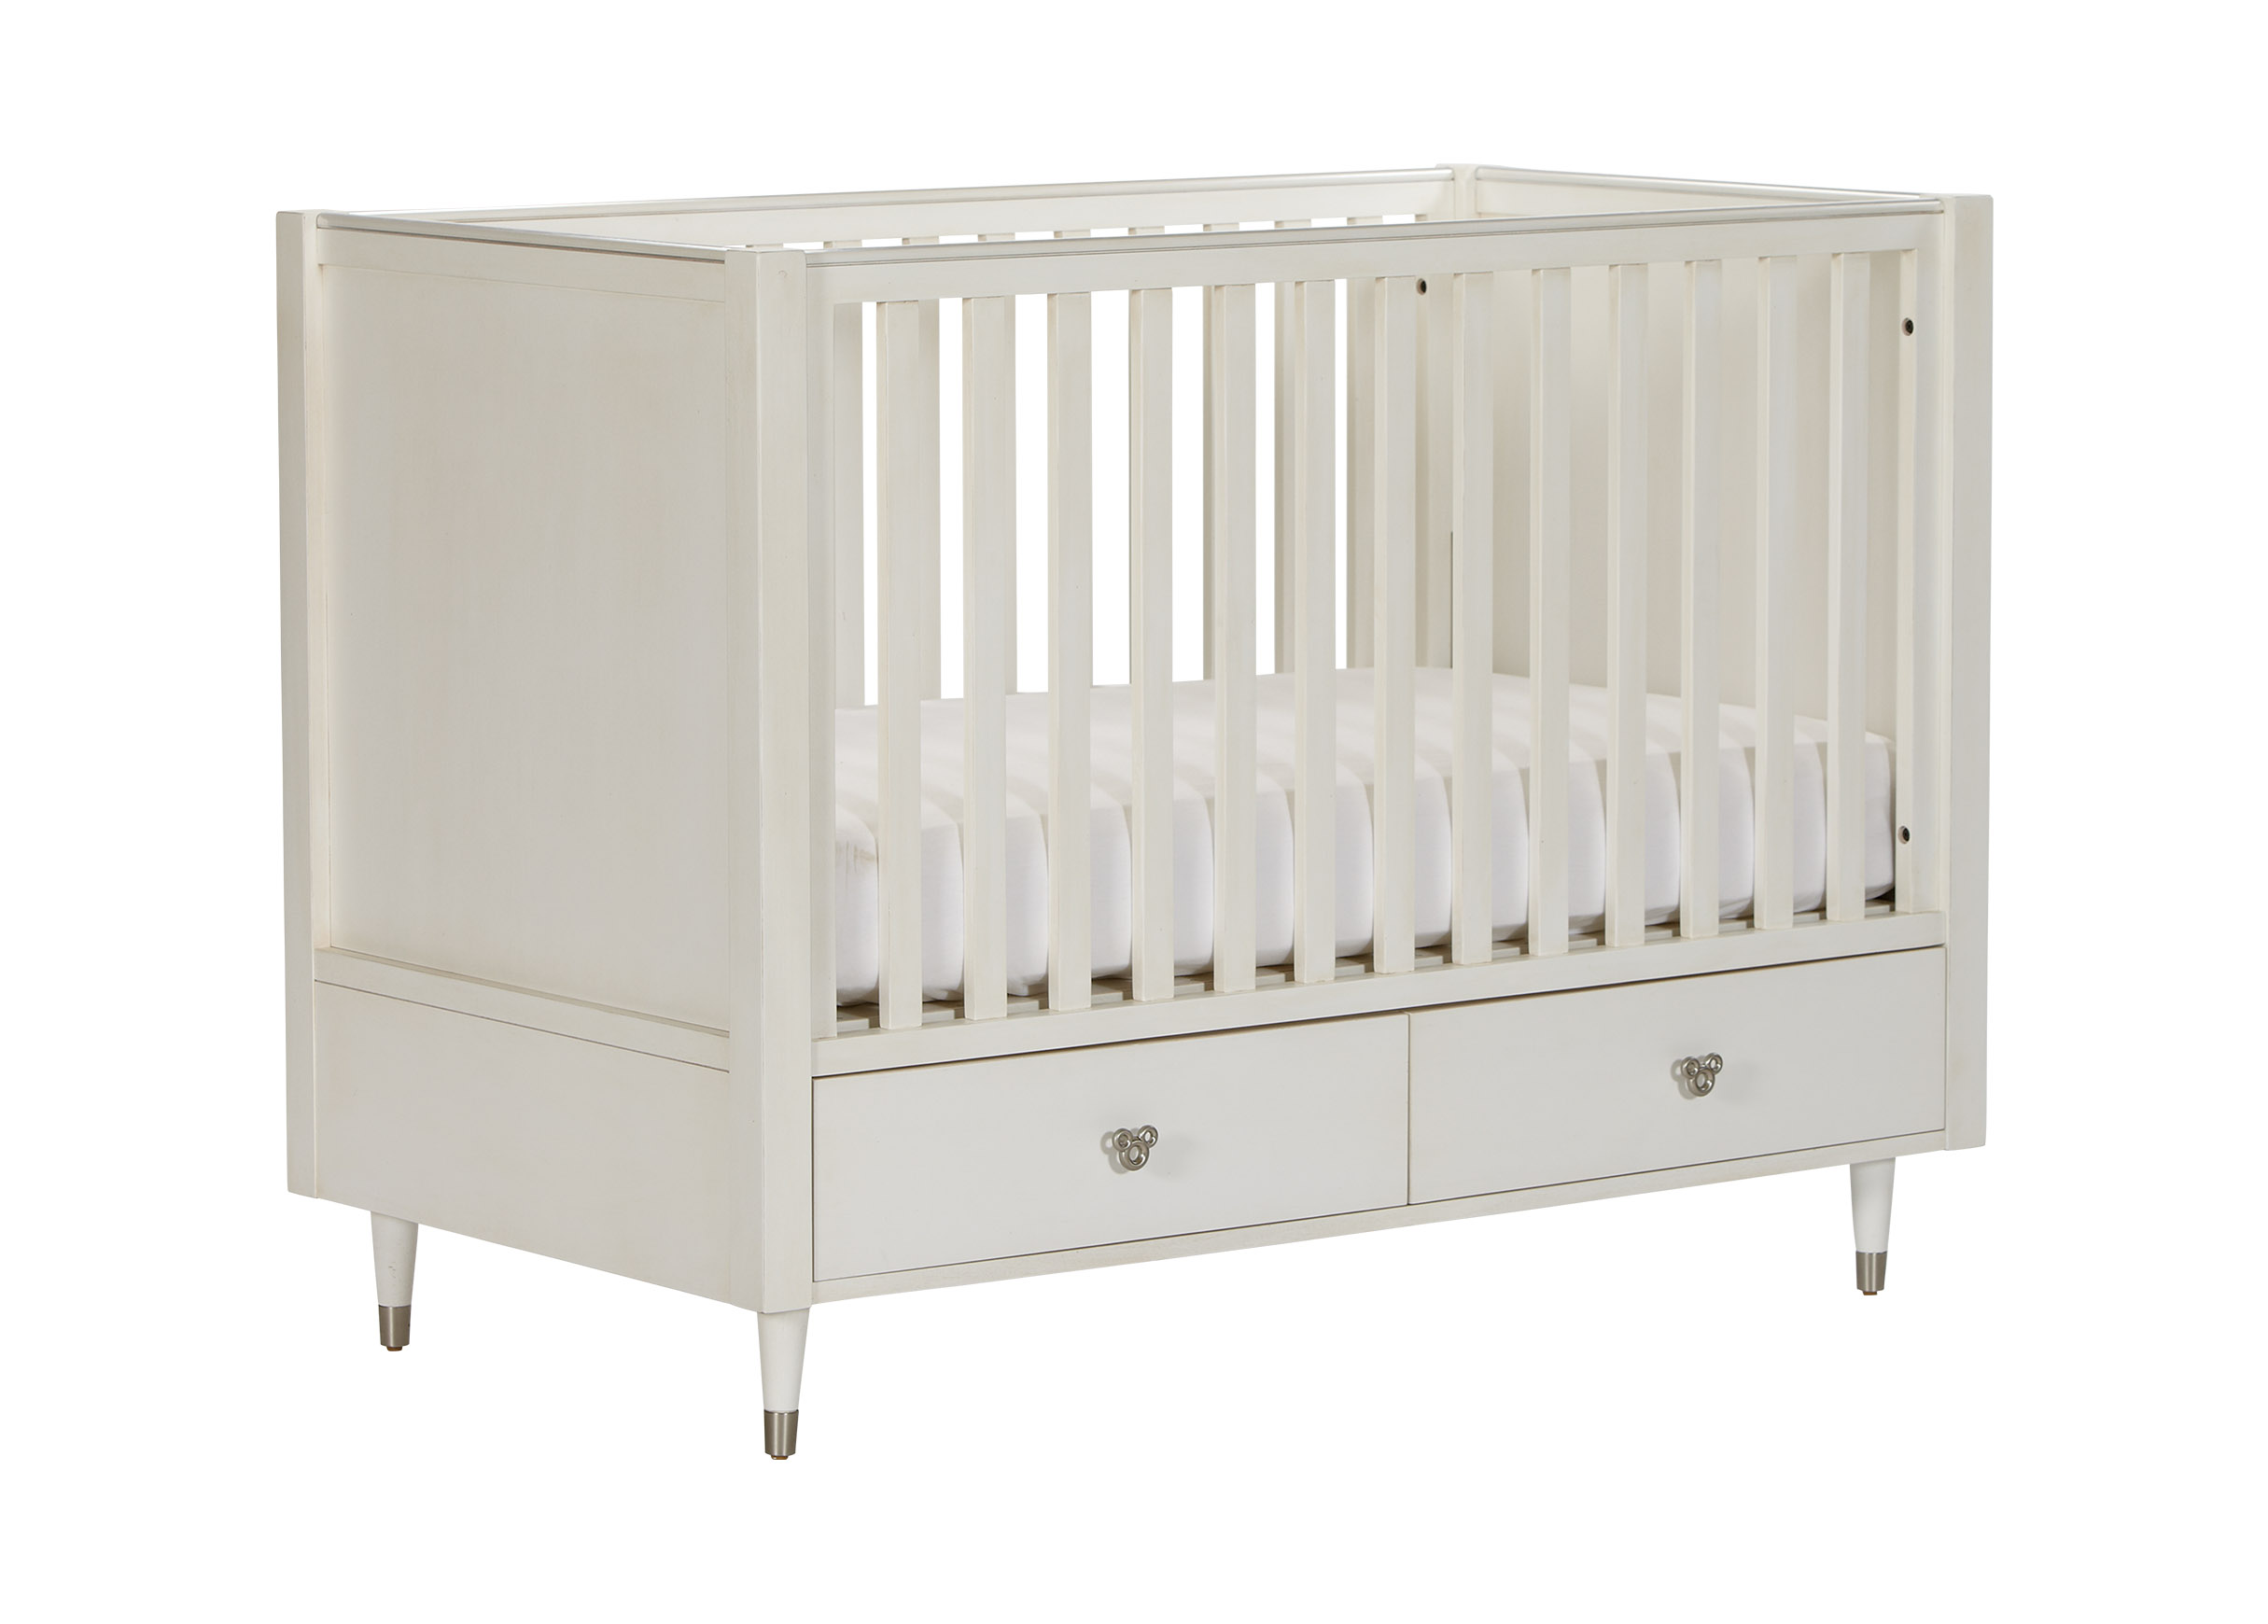 rand bed turns into kolcraft crib in baby convertible products elston